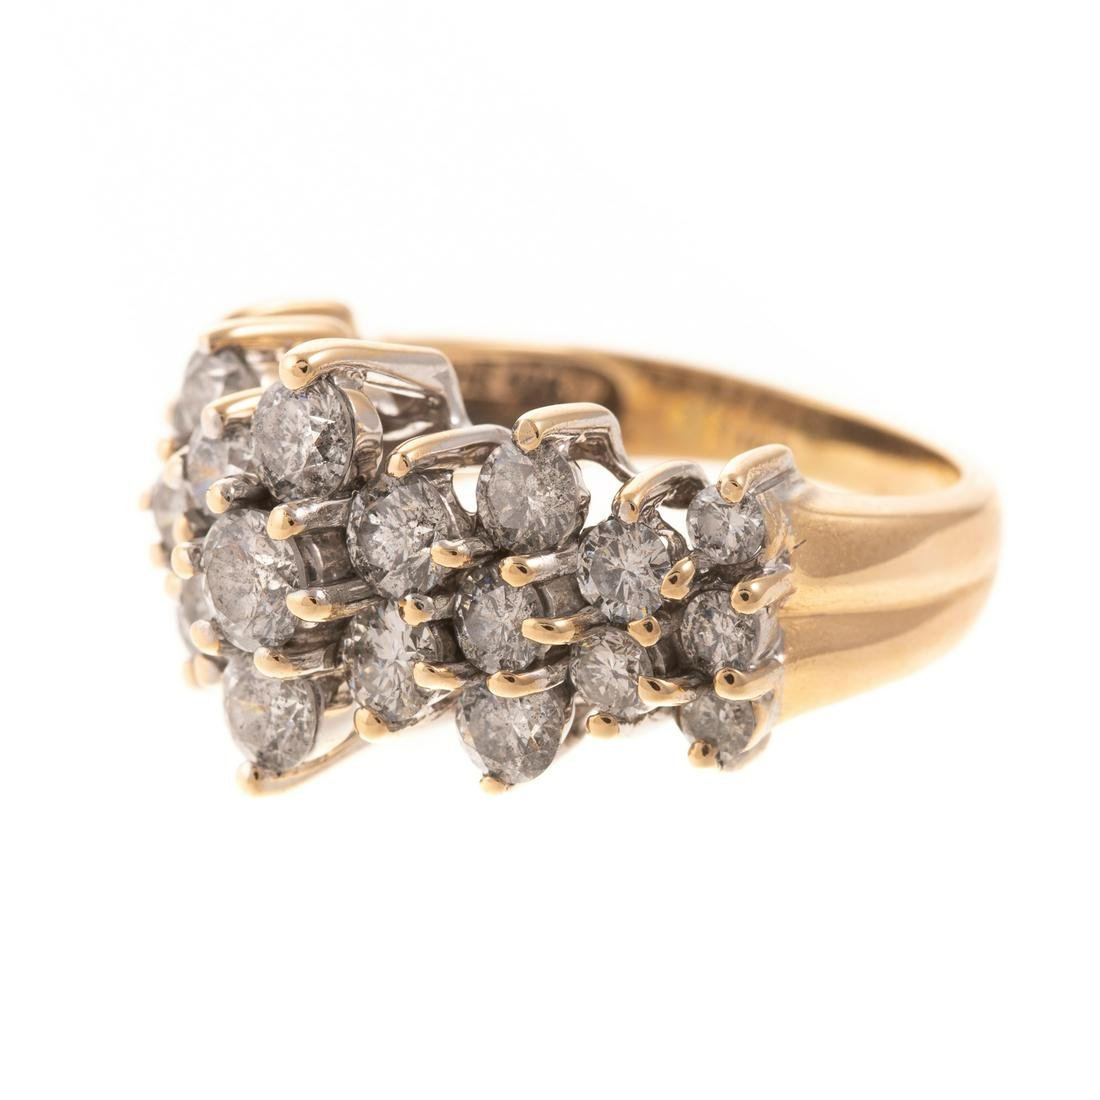 A 2.50 ctw Diamond Cluster Ring in 14K